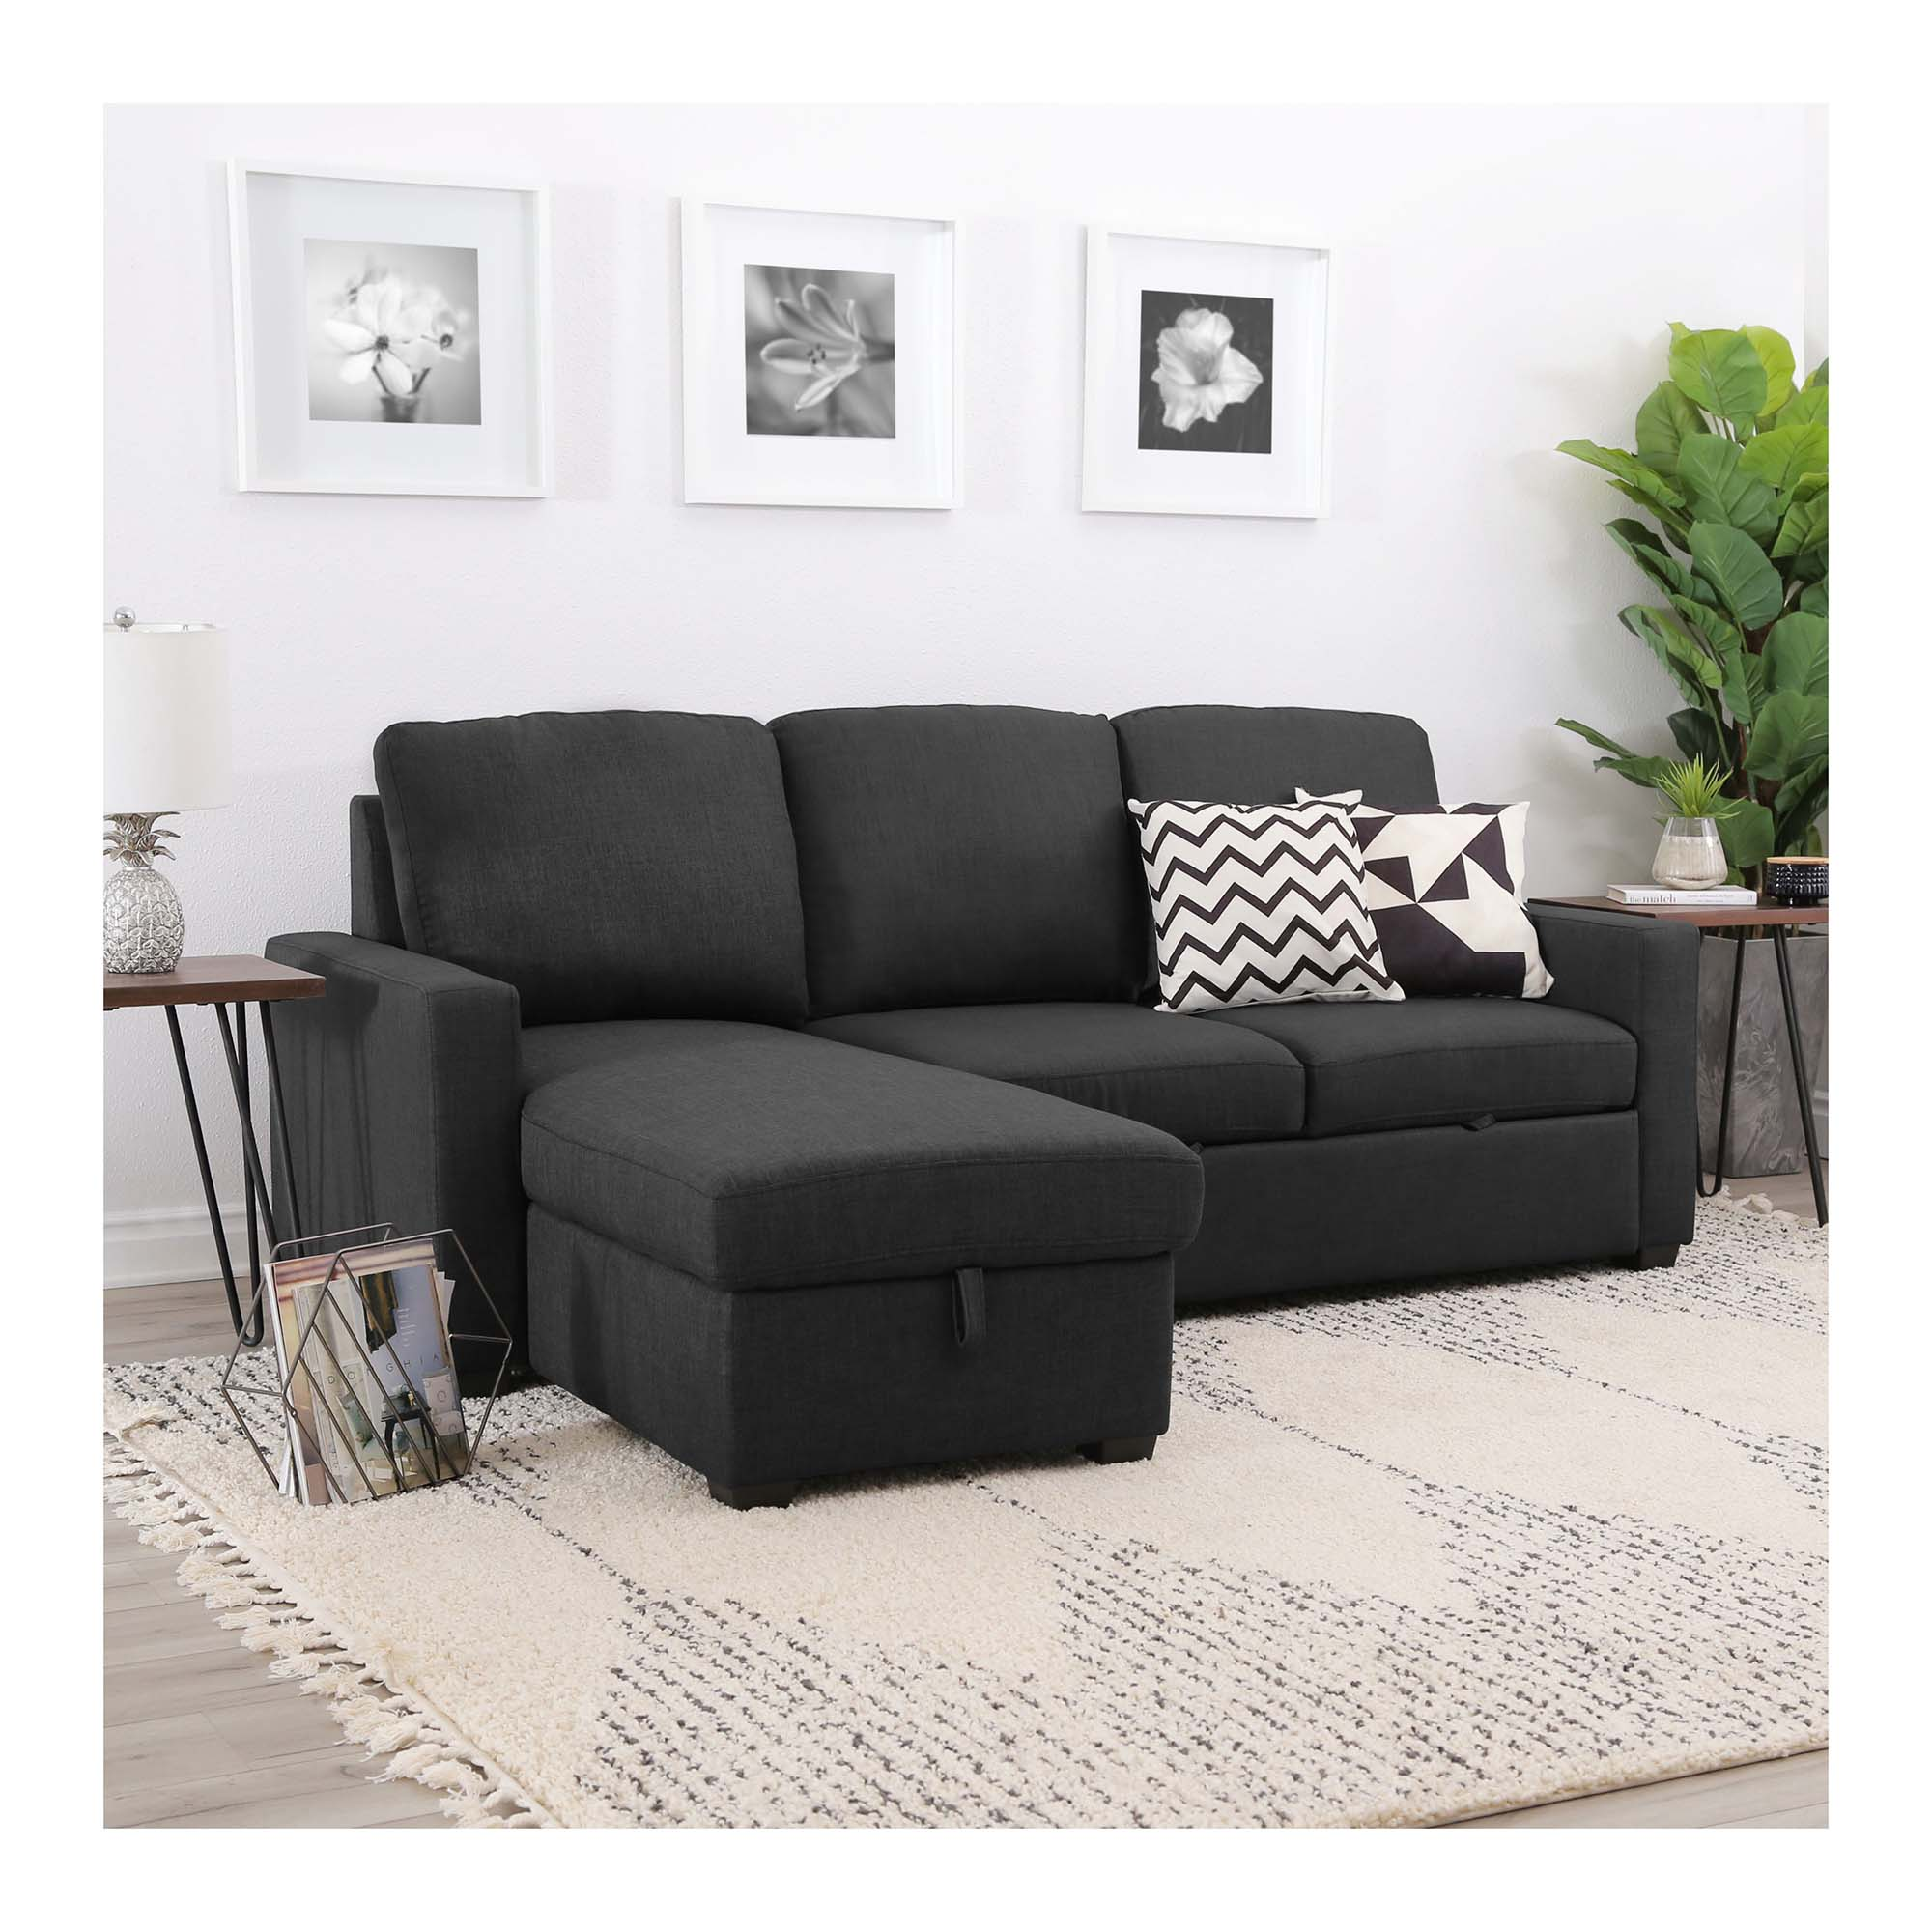 Rent To Own Abbyson Living 2 Piece Newton Grey Chaise Sofa At Aaron S Today